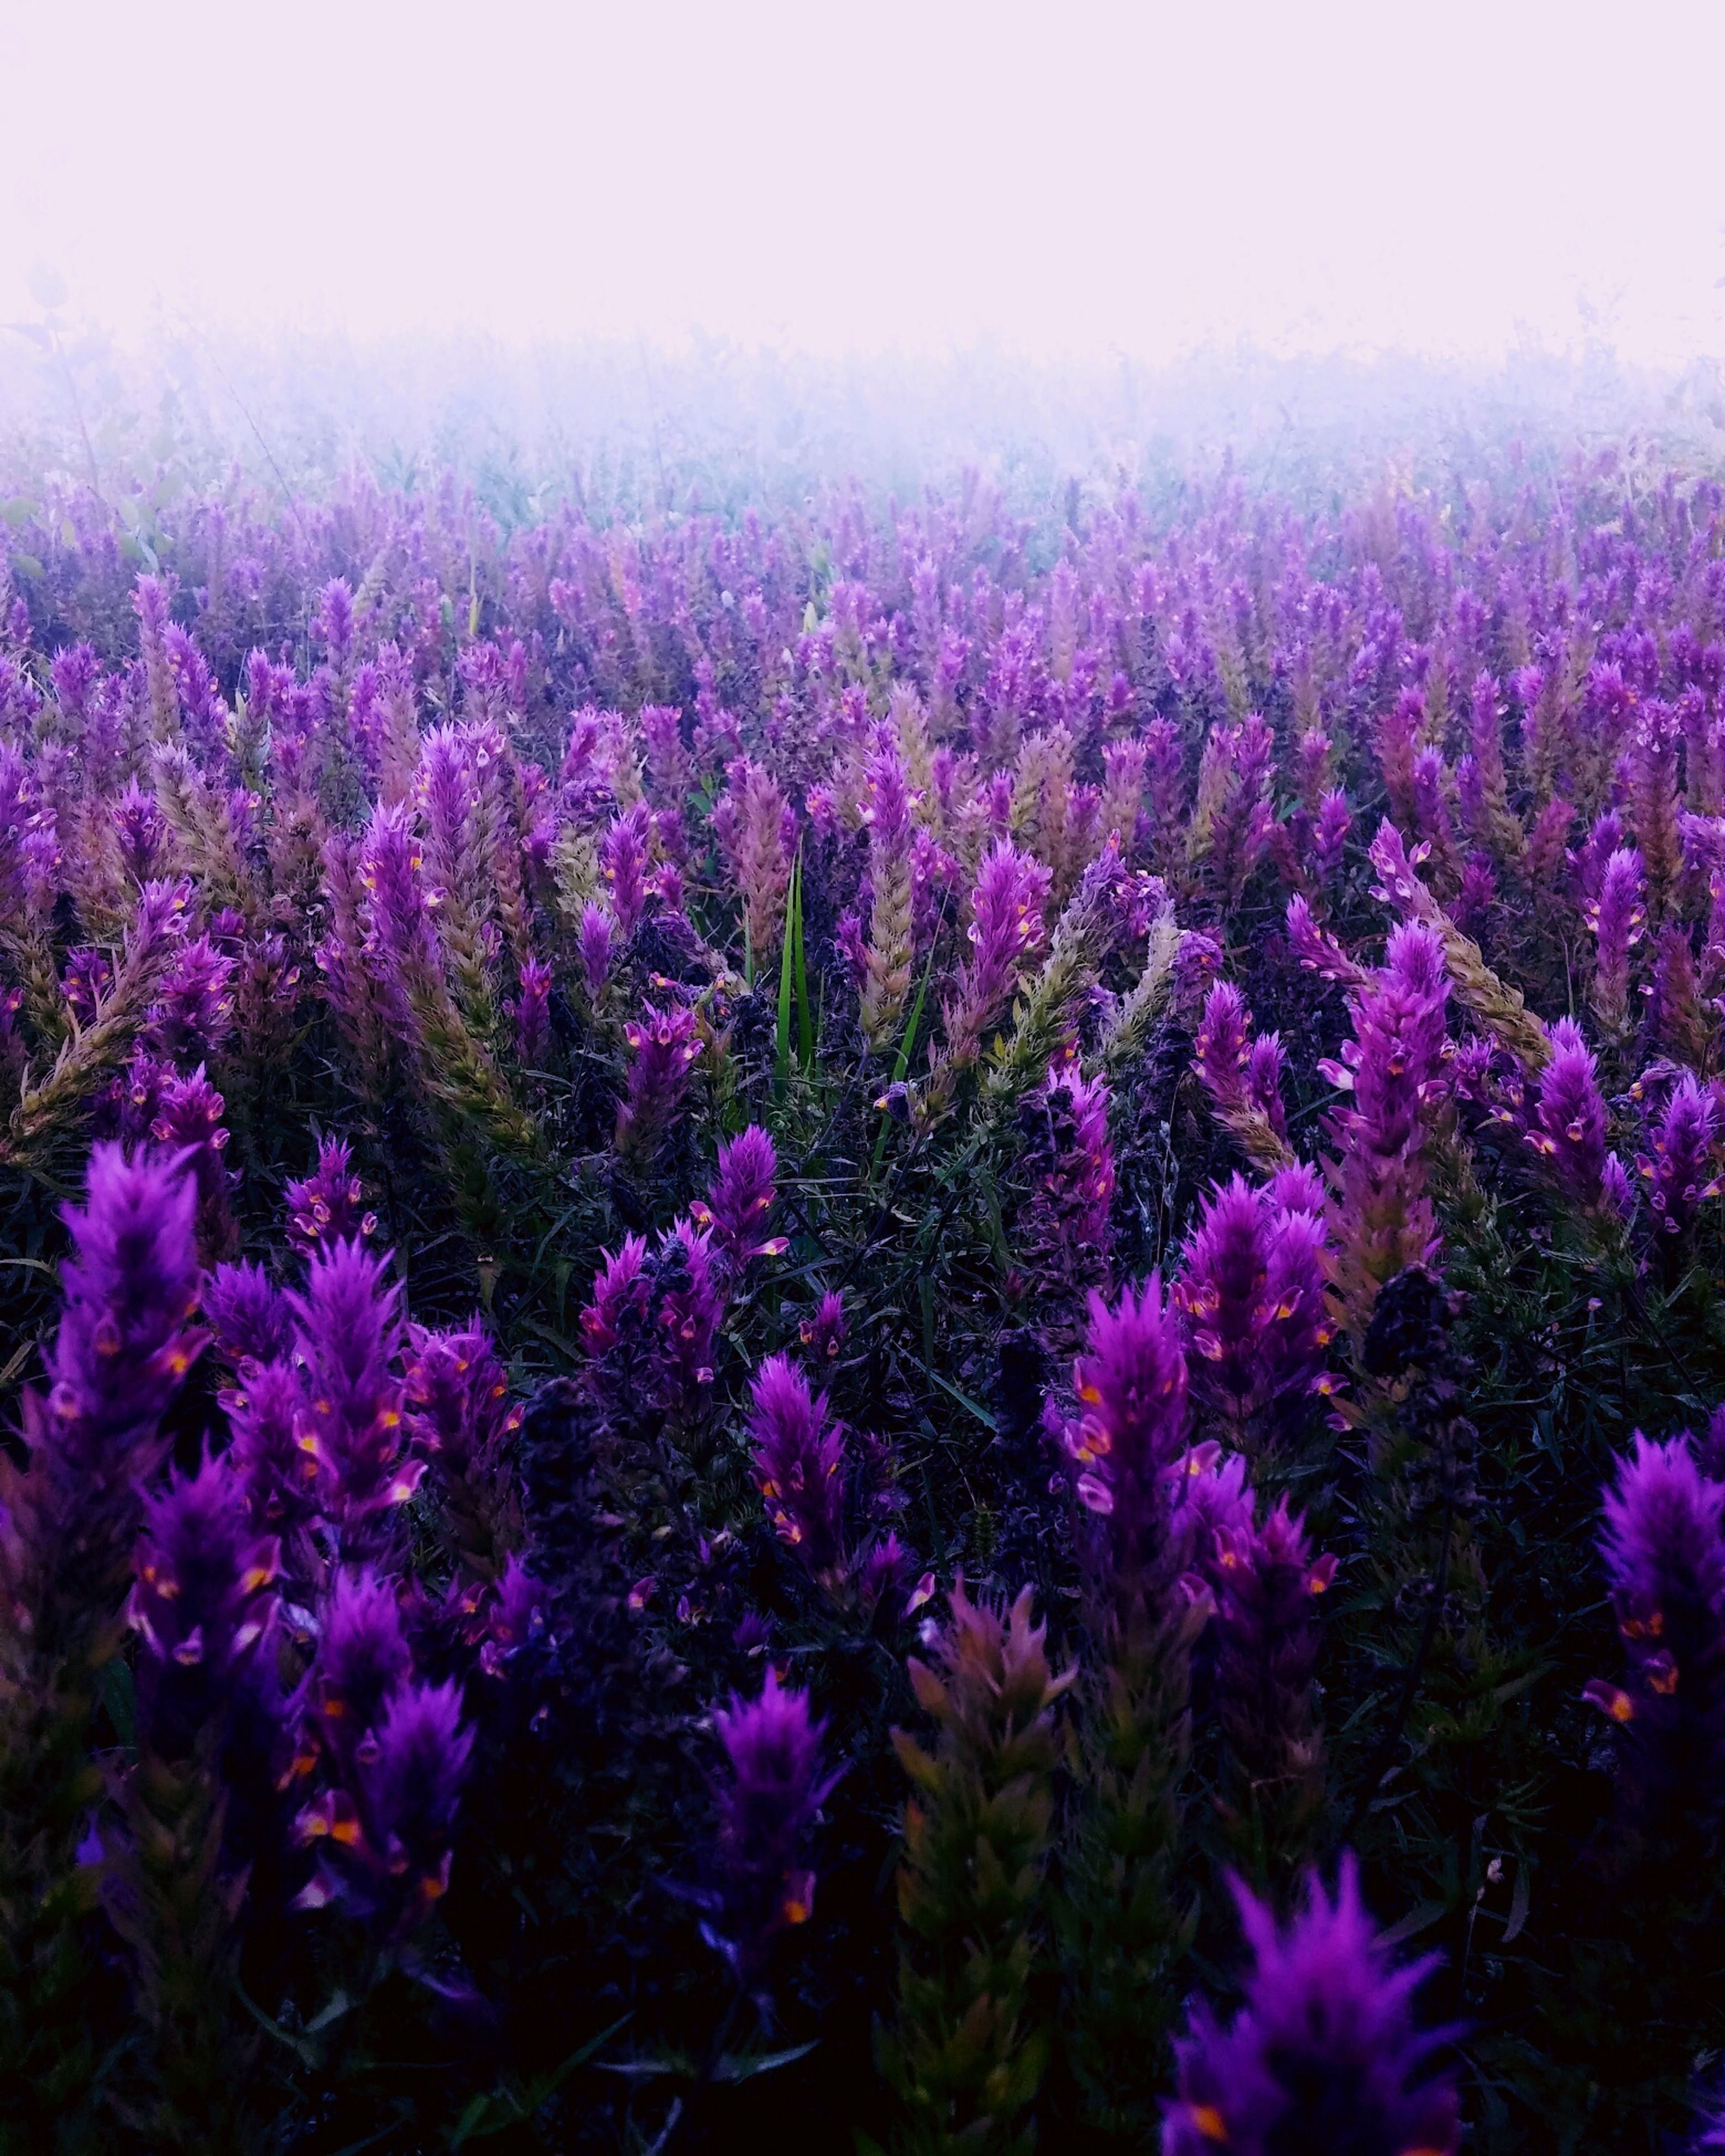 flower, growth, freshness, beauty in nature, fragility, purple, plant, nature, blooming, petal, in bloom, field, pink color, flower head, blossom, tranquility, outdoors, abundance, no people, day